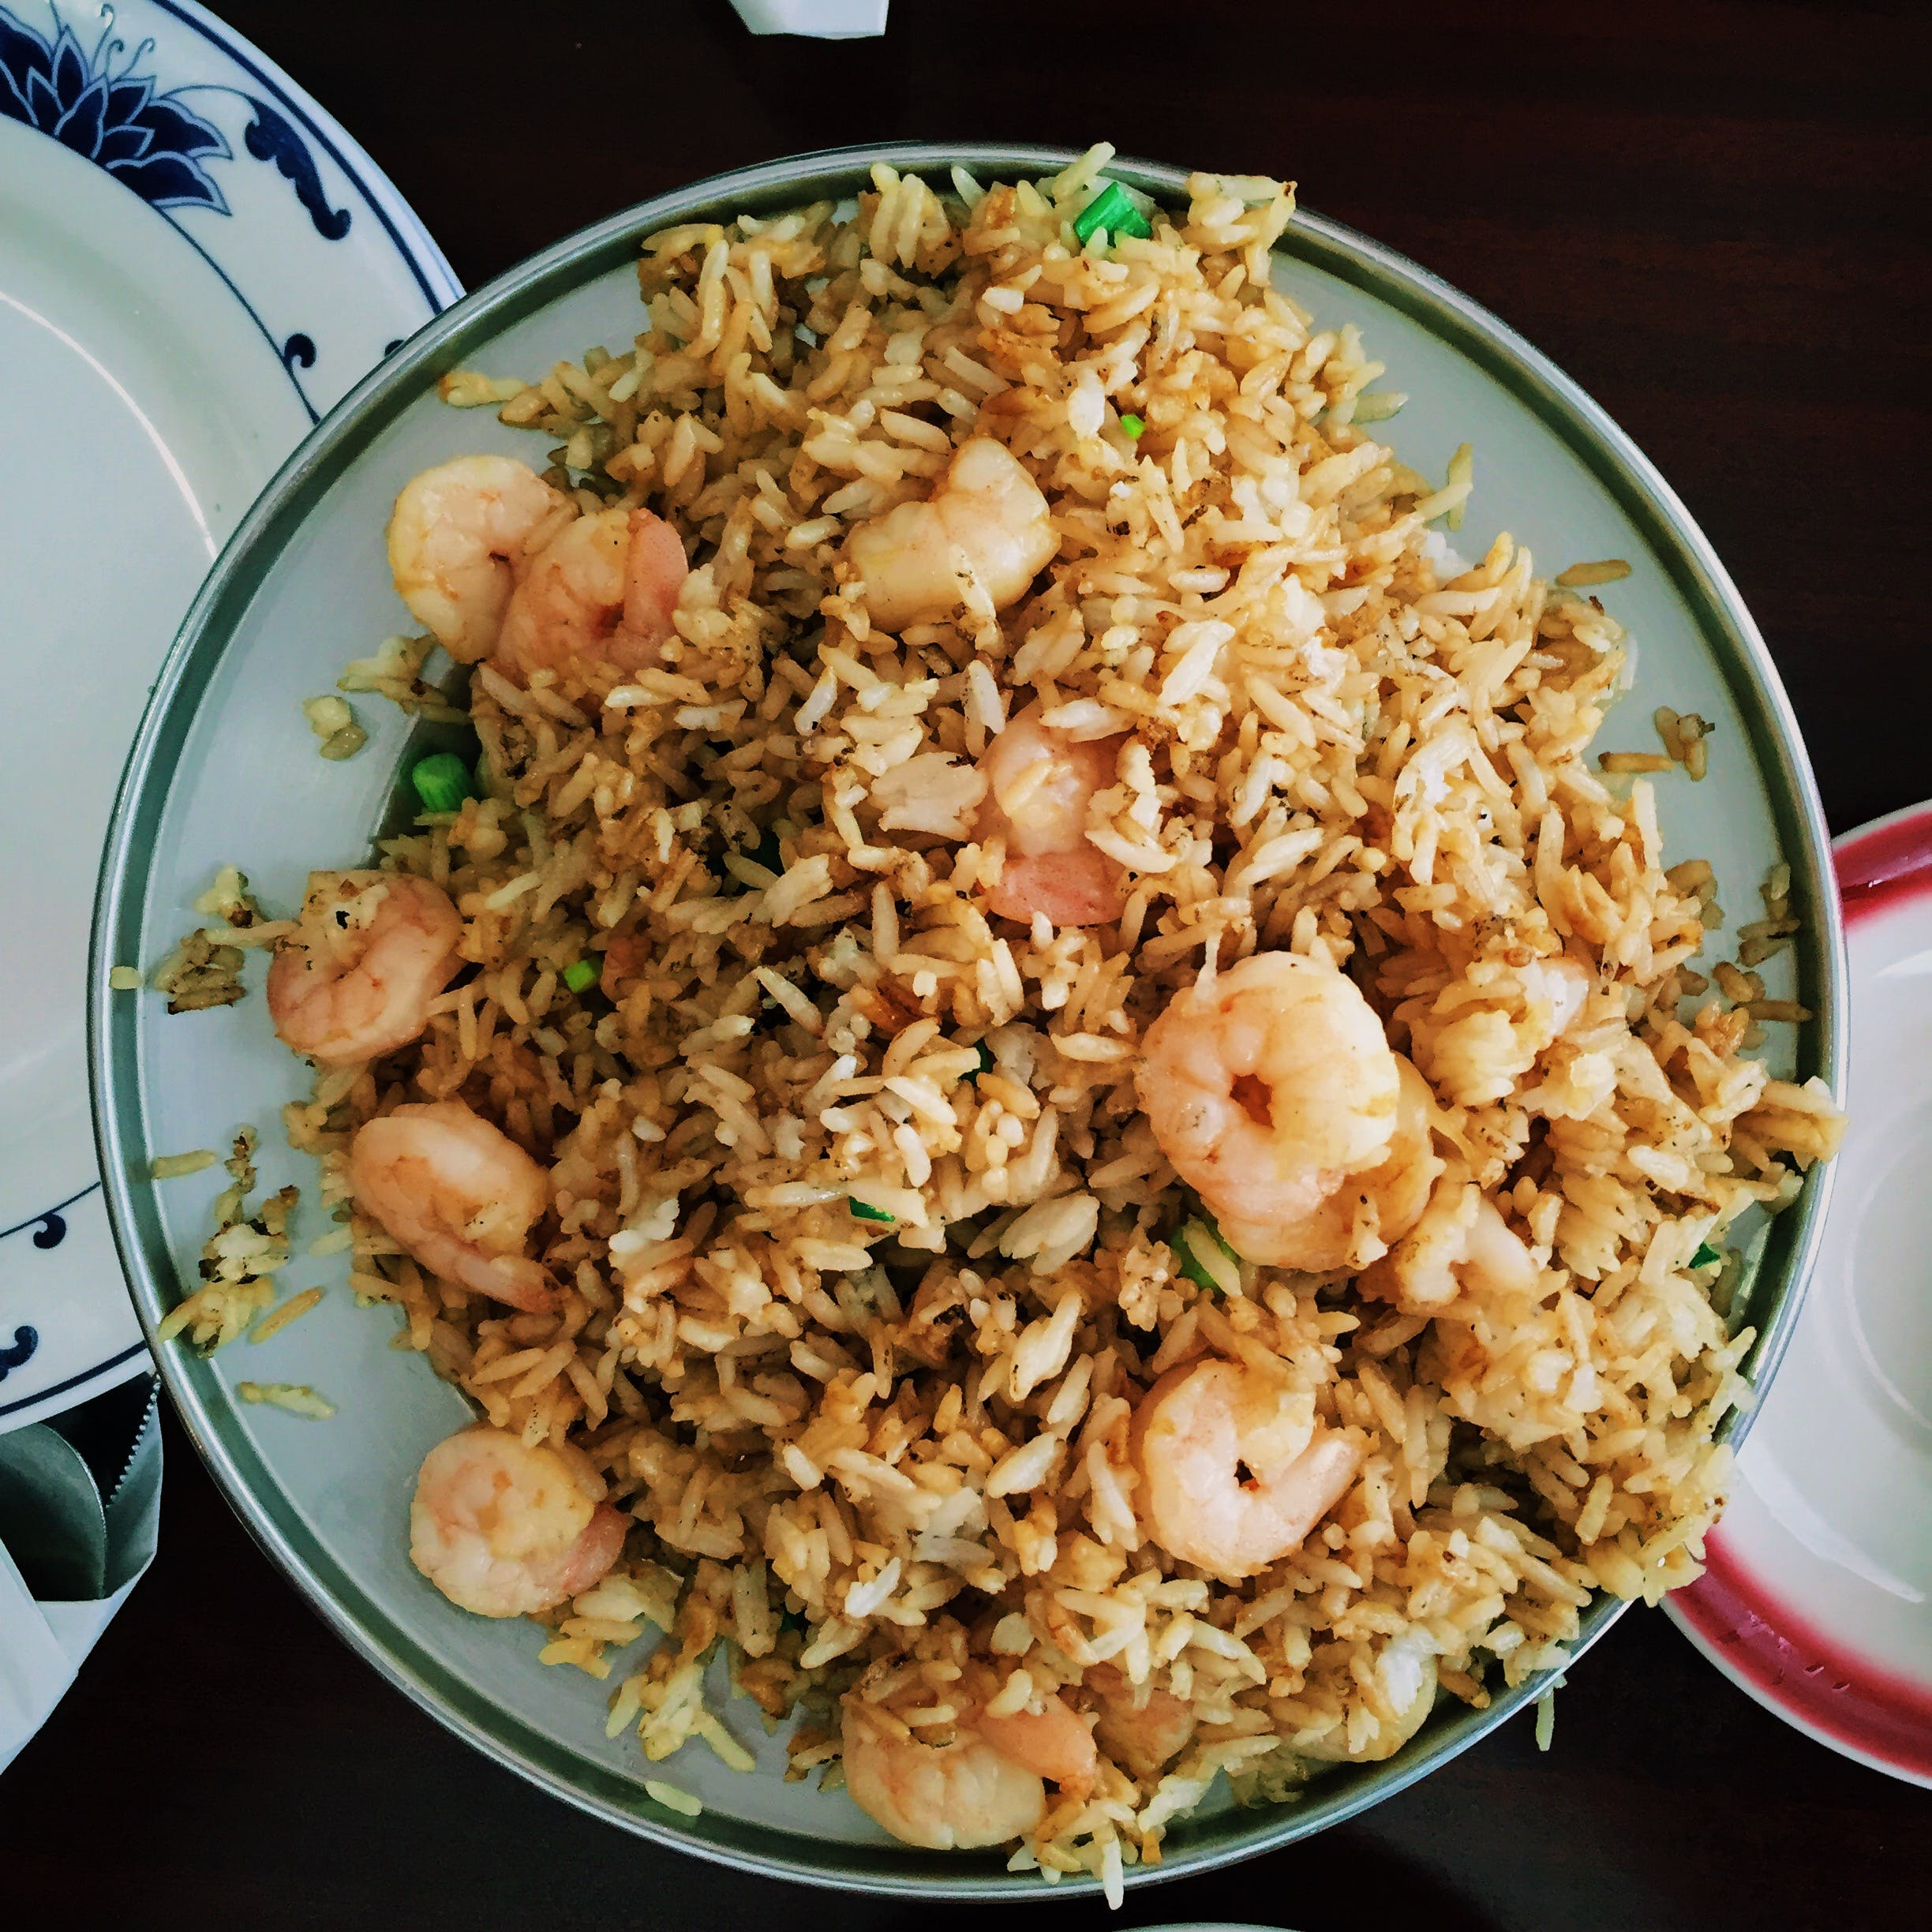 Free stock photo of food, Chinese, vsco